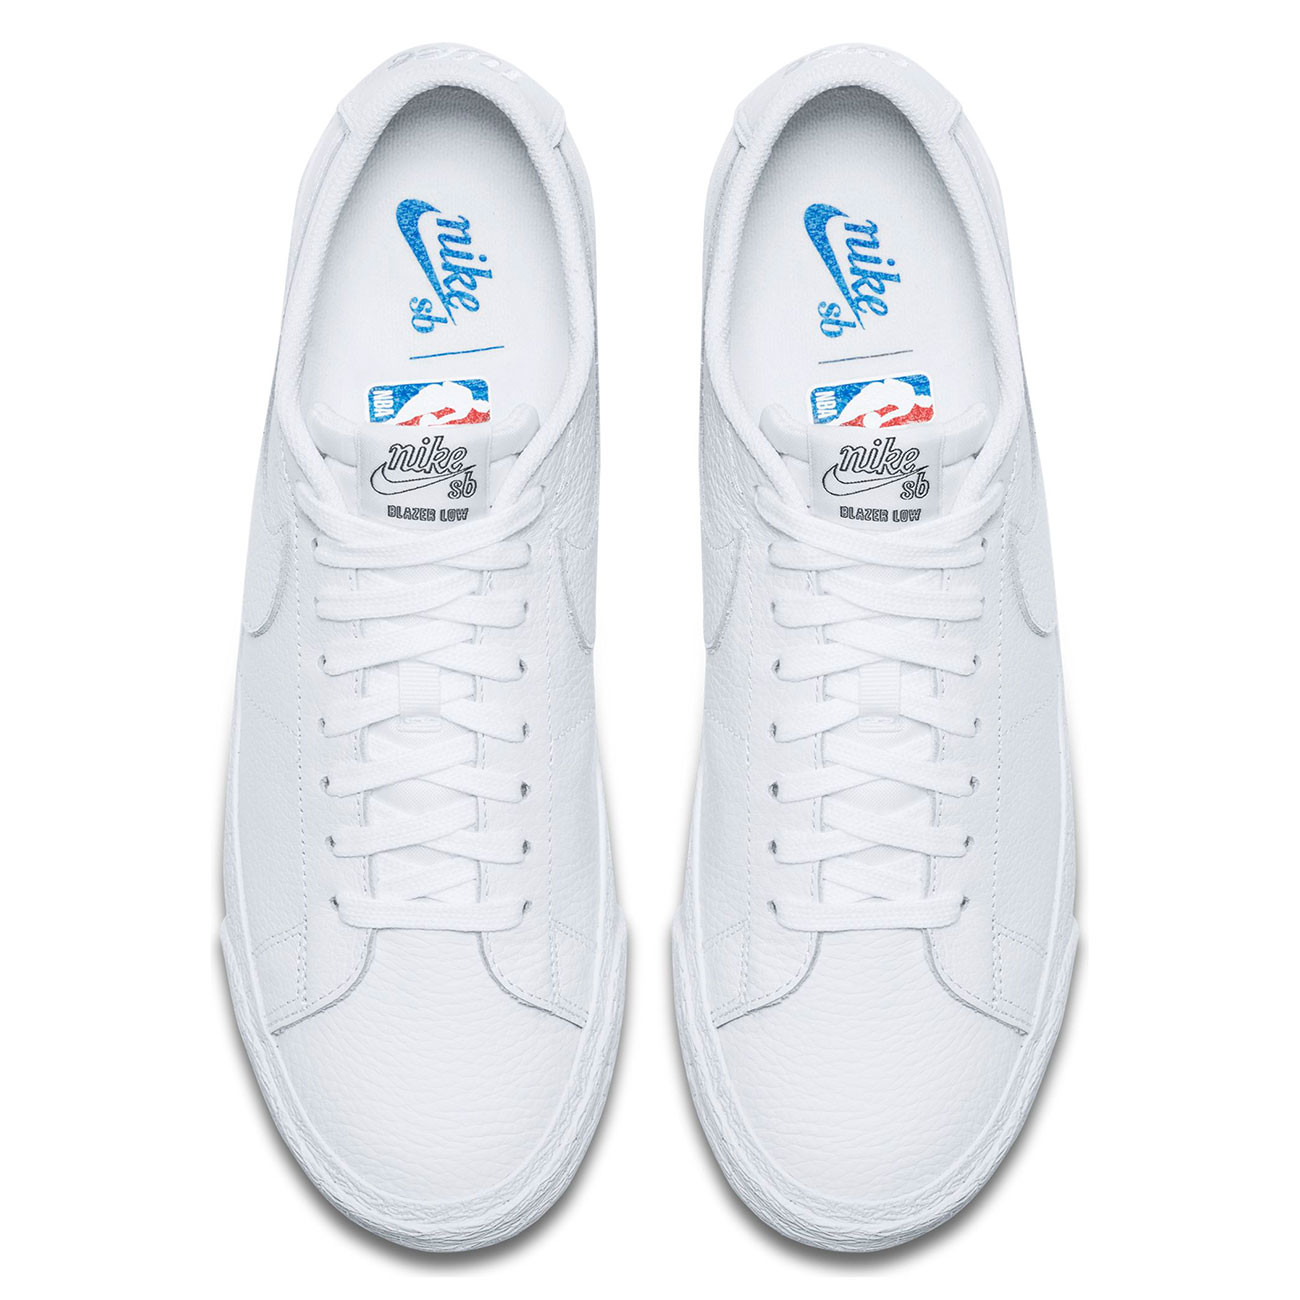 4ae4672bccd8 Sneakers Nike SB Zoom Blazer Low Nba white white-rush blue-unvrst ...